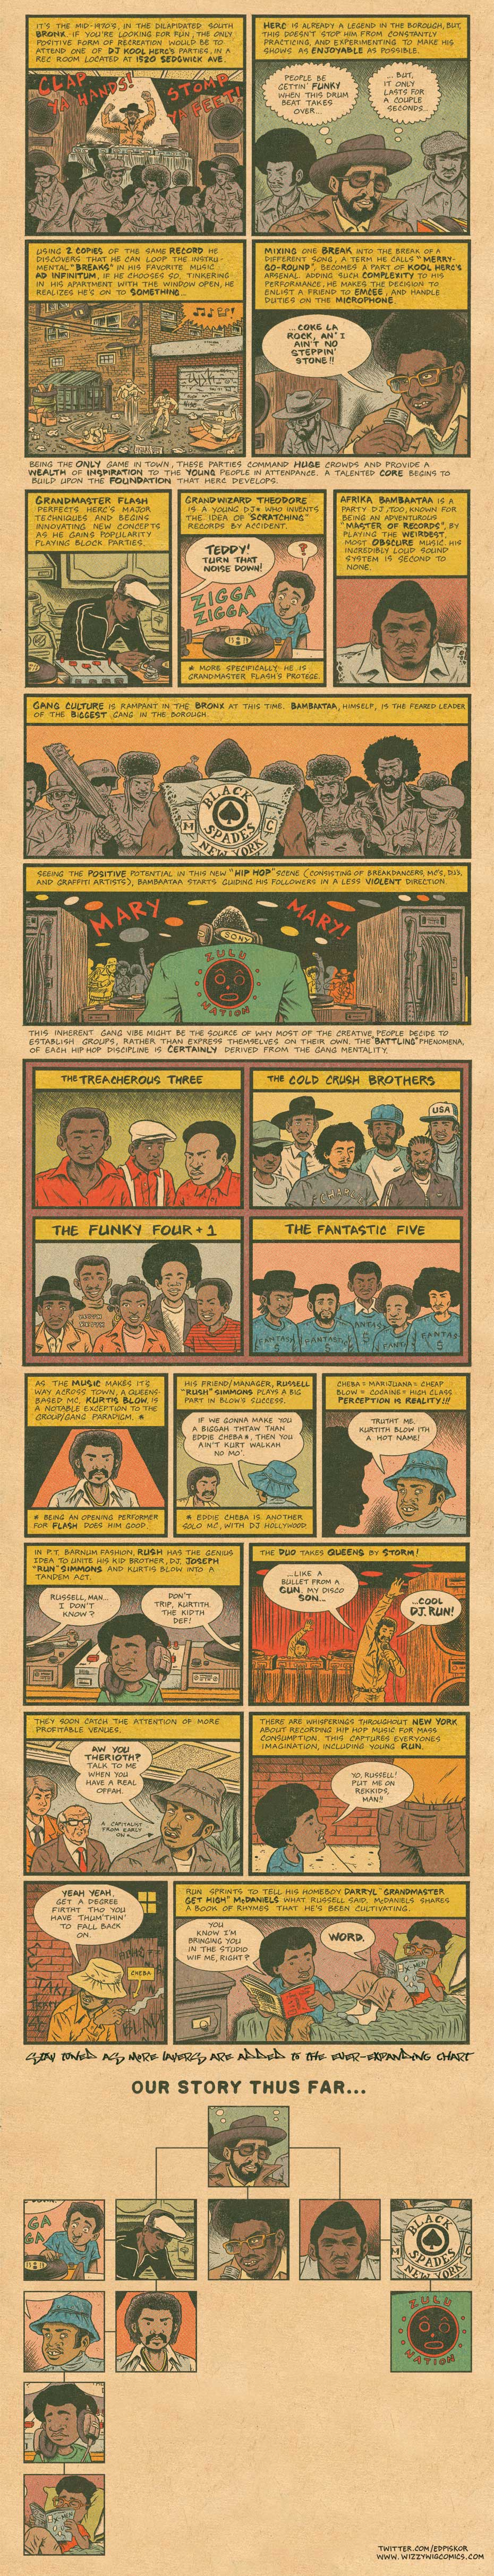 The origins of Hip-Hop. A must read if you don't know any of the following names: Grandmaster Flash, Treacherous 3, Zulu Nation, Fab 5 Freddy, DJ Kool Herc. It's a good read even if you do.